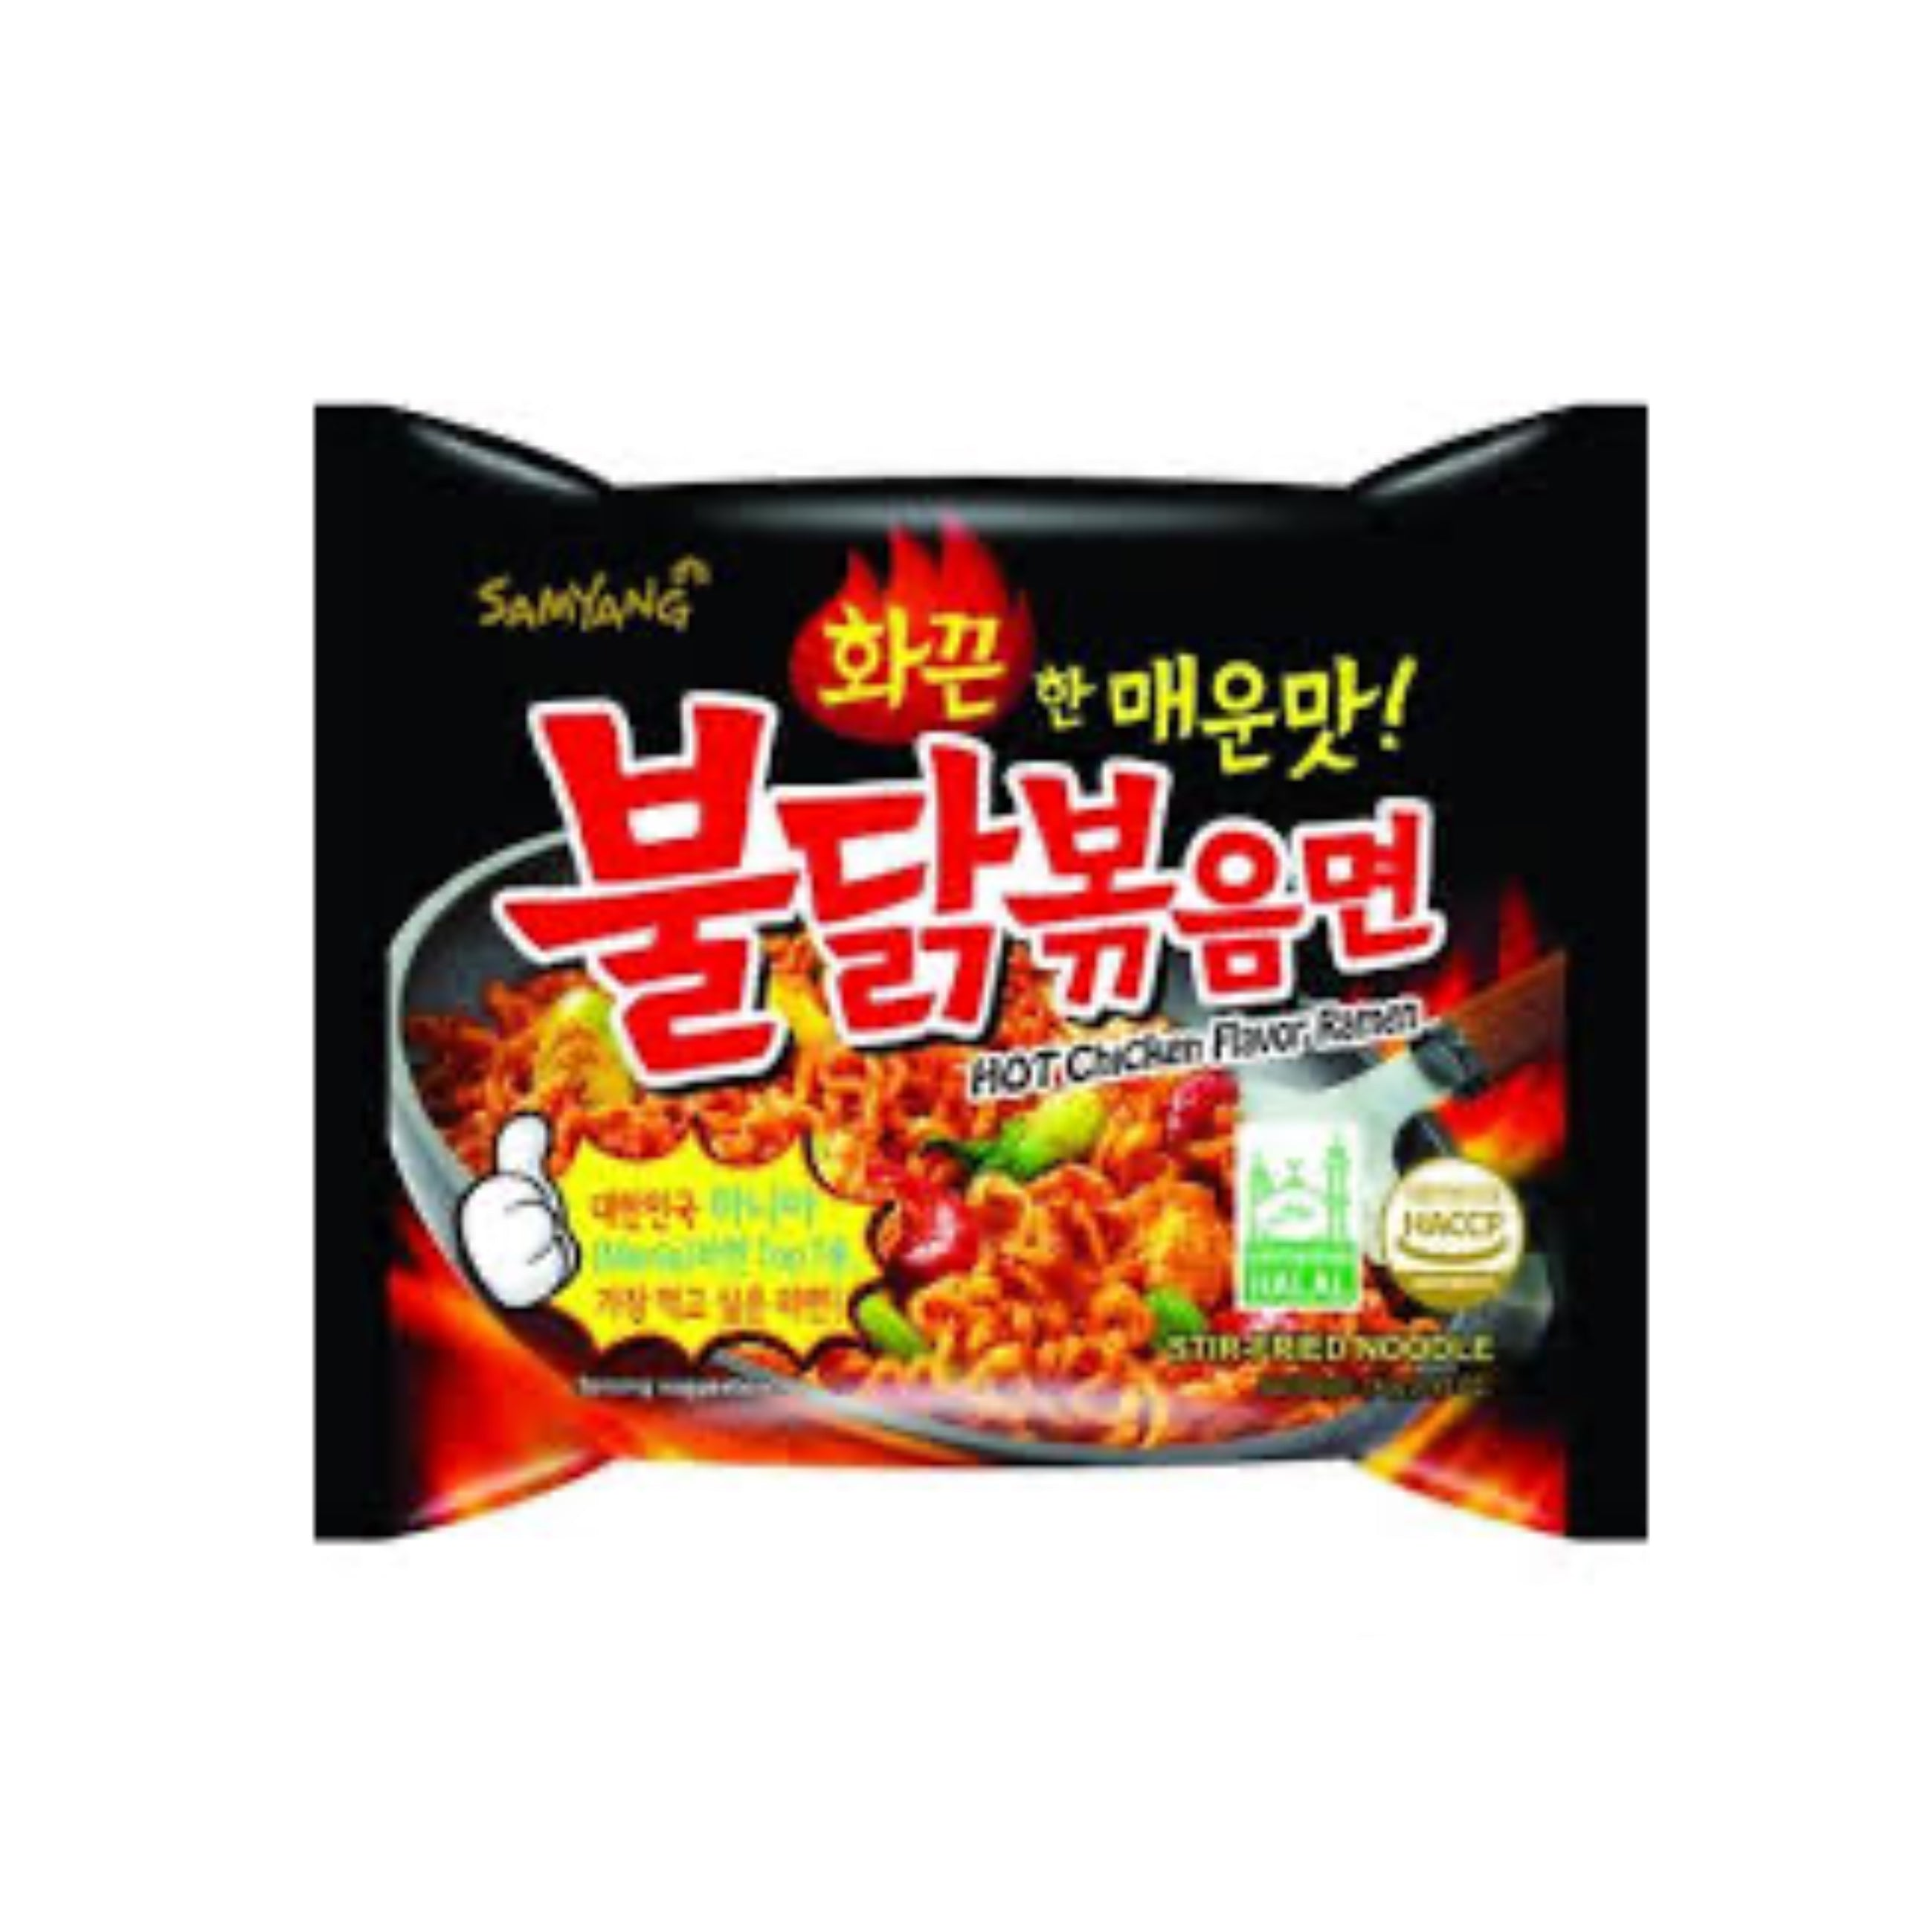 SAMYANG HOT CHICKEN FLAVOR RAMEN 140g